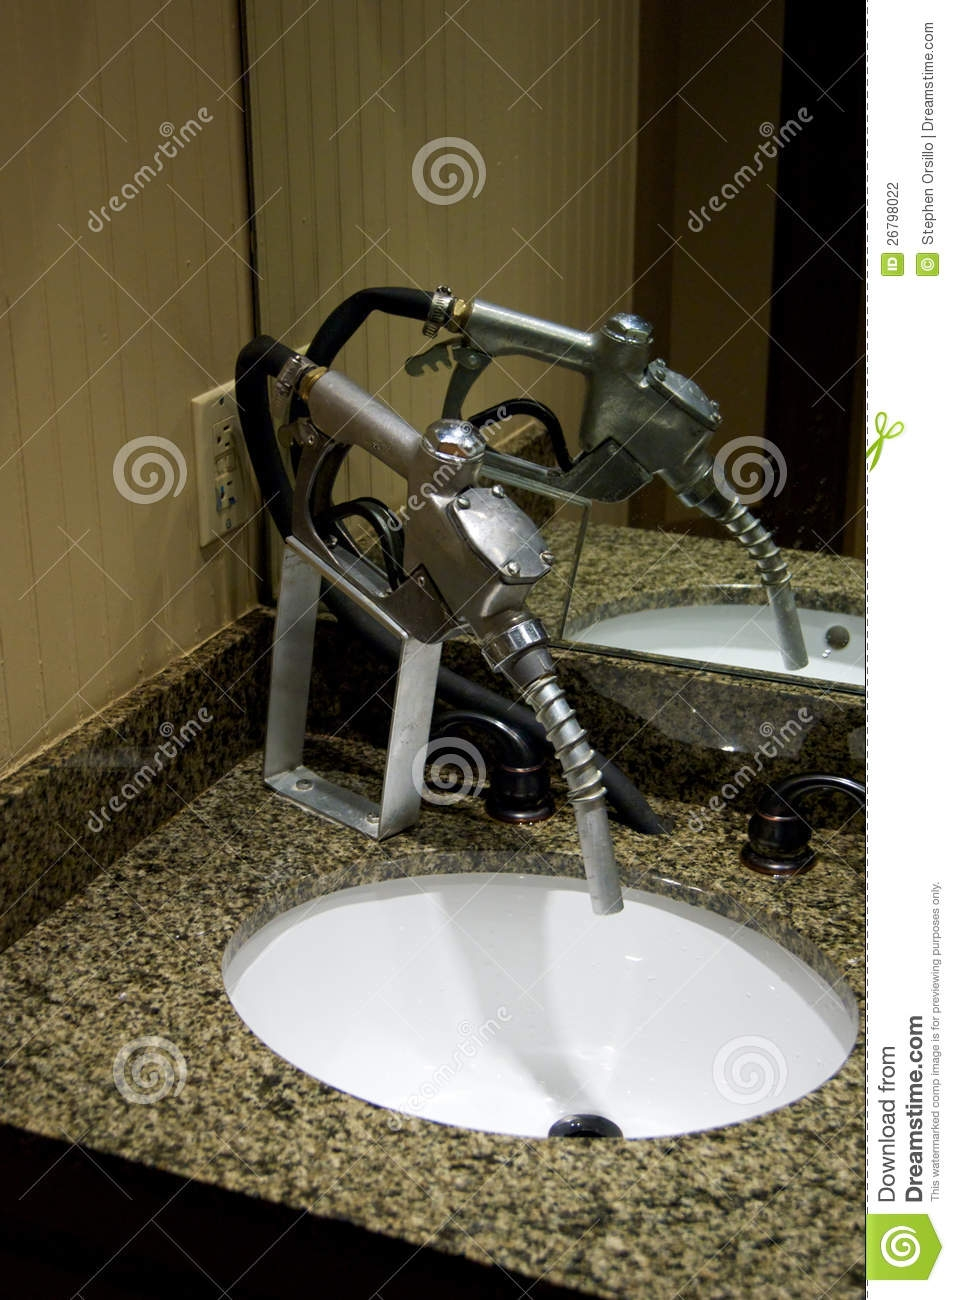 Ideas, bathroom faucet that looks like a water pump bathroom faucet that looks like a water pump tire sink with gas pump faucet best sink decoration 955 x 1300  .